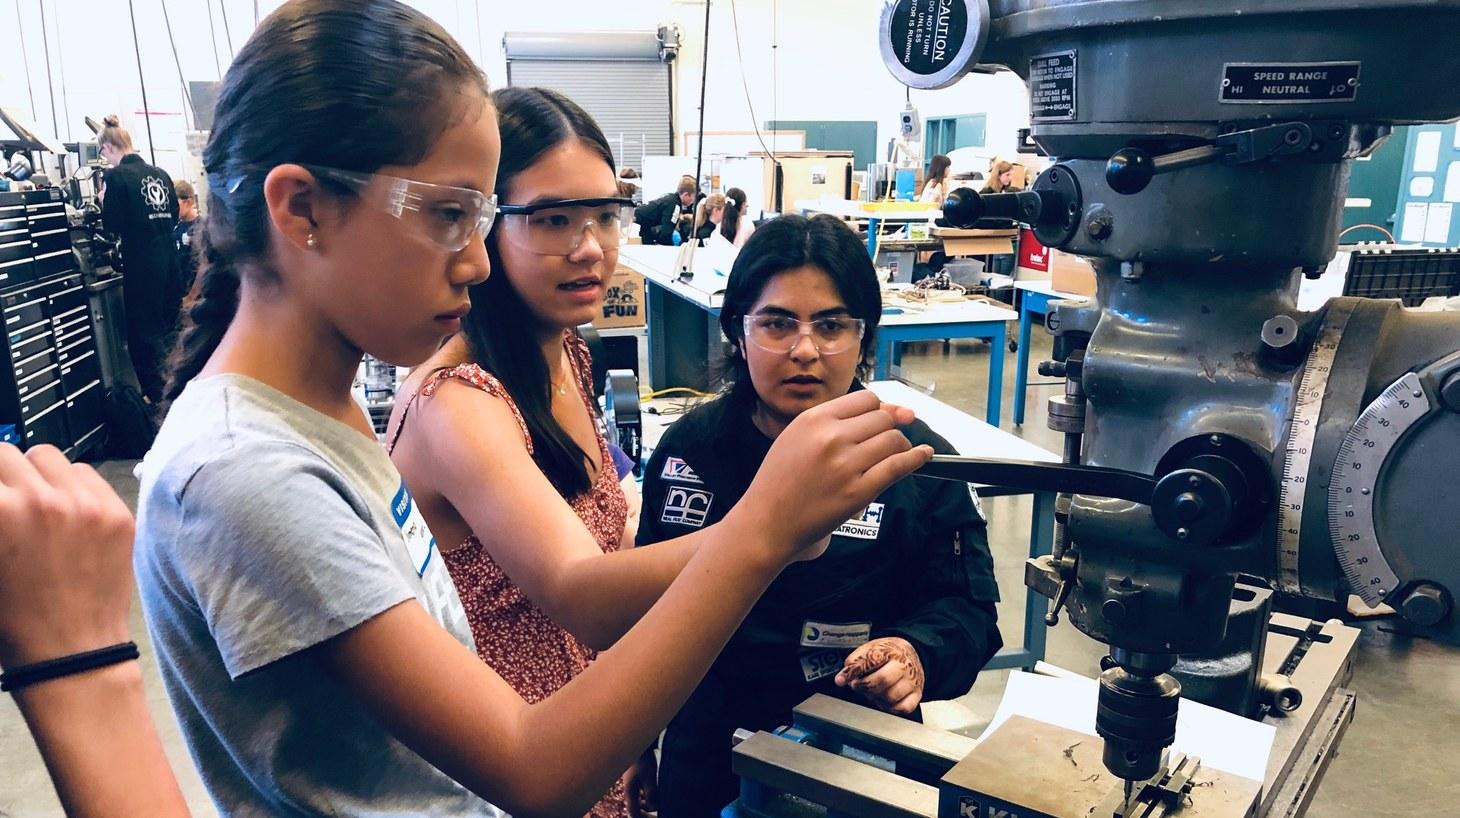 A Dos Pueblos Engineering Academy student helps guide visiting elementary students with a drill press.